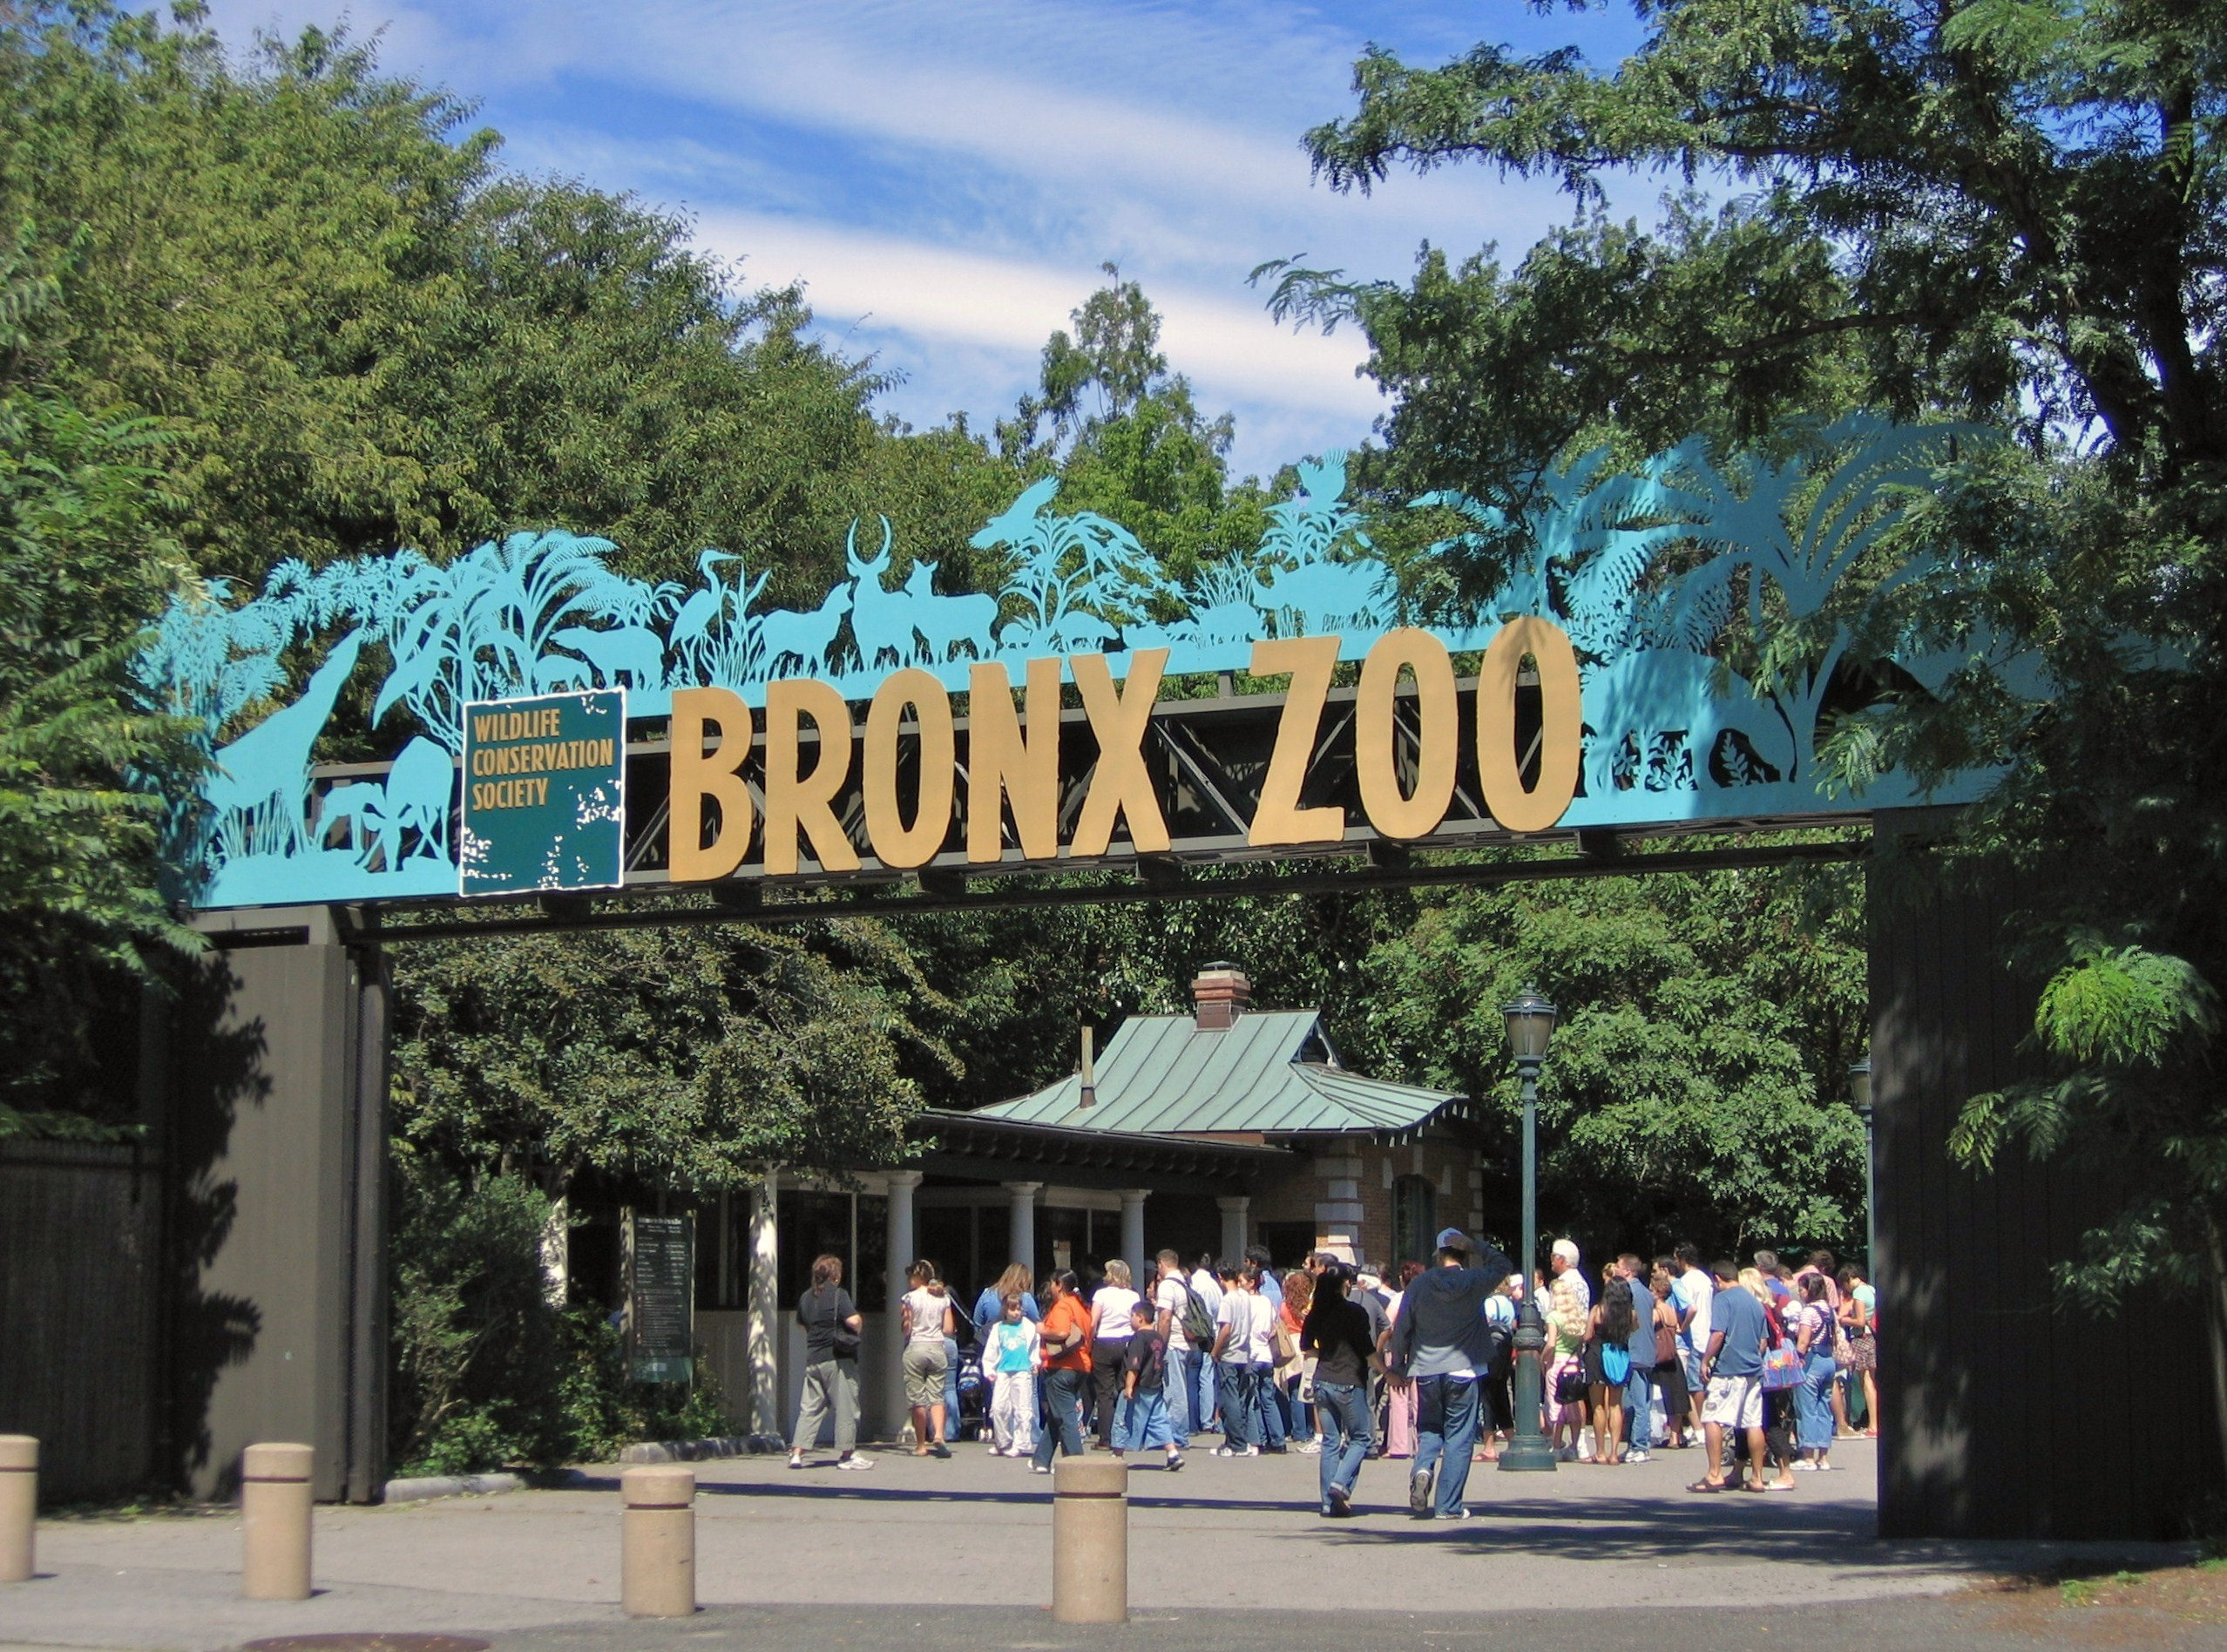 Bronx Zoo Wikipedia